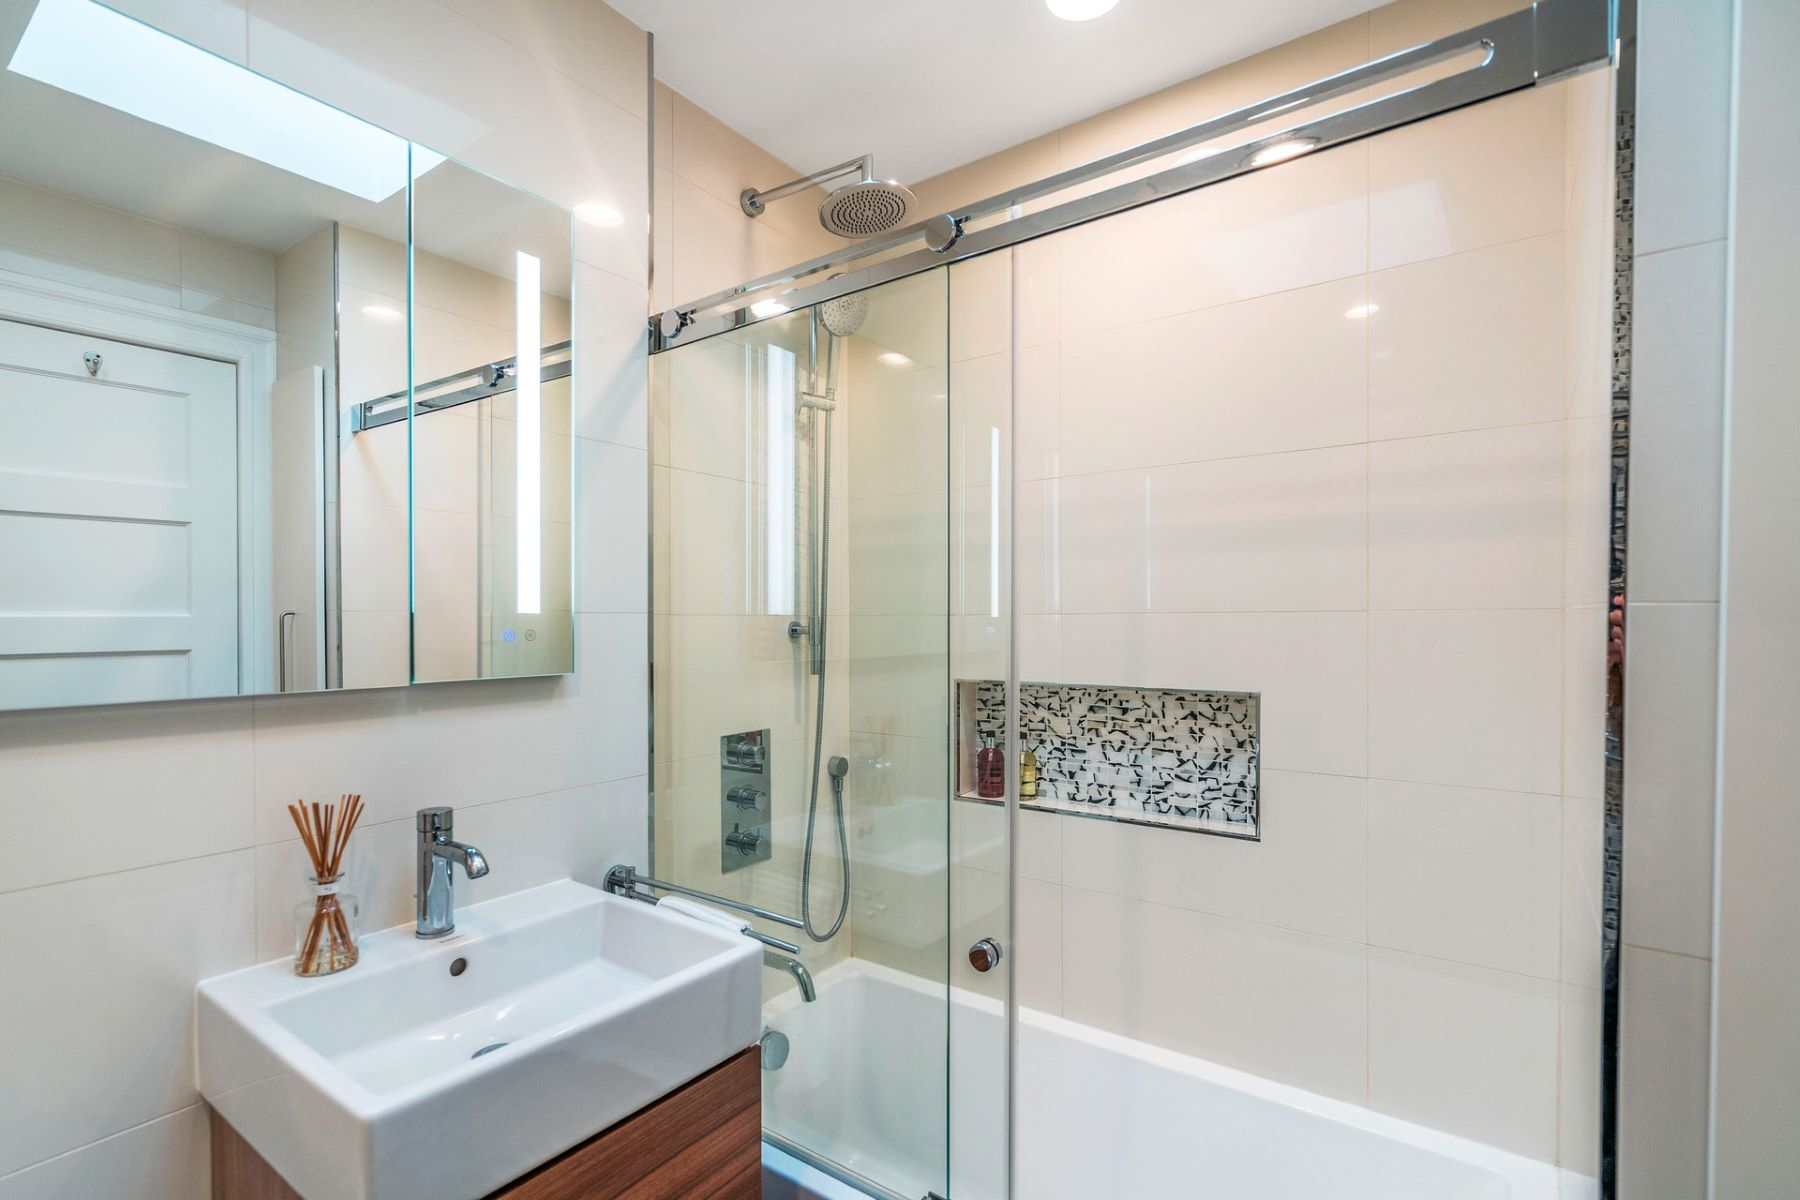 Additional photo for property listing at Lovingly updated for modern day living 6101 Highland Pl, 西纽约, 新泽西州 07093 美国